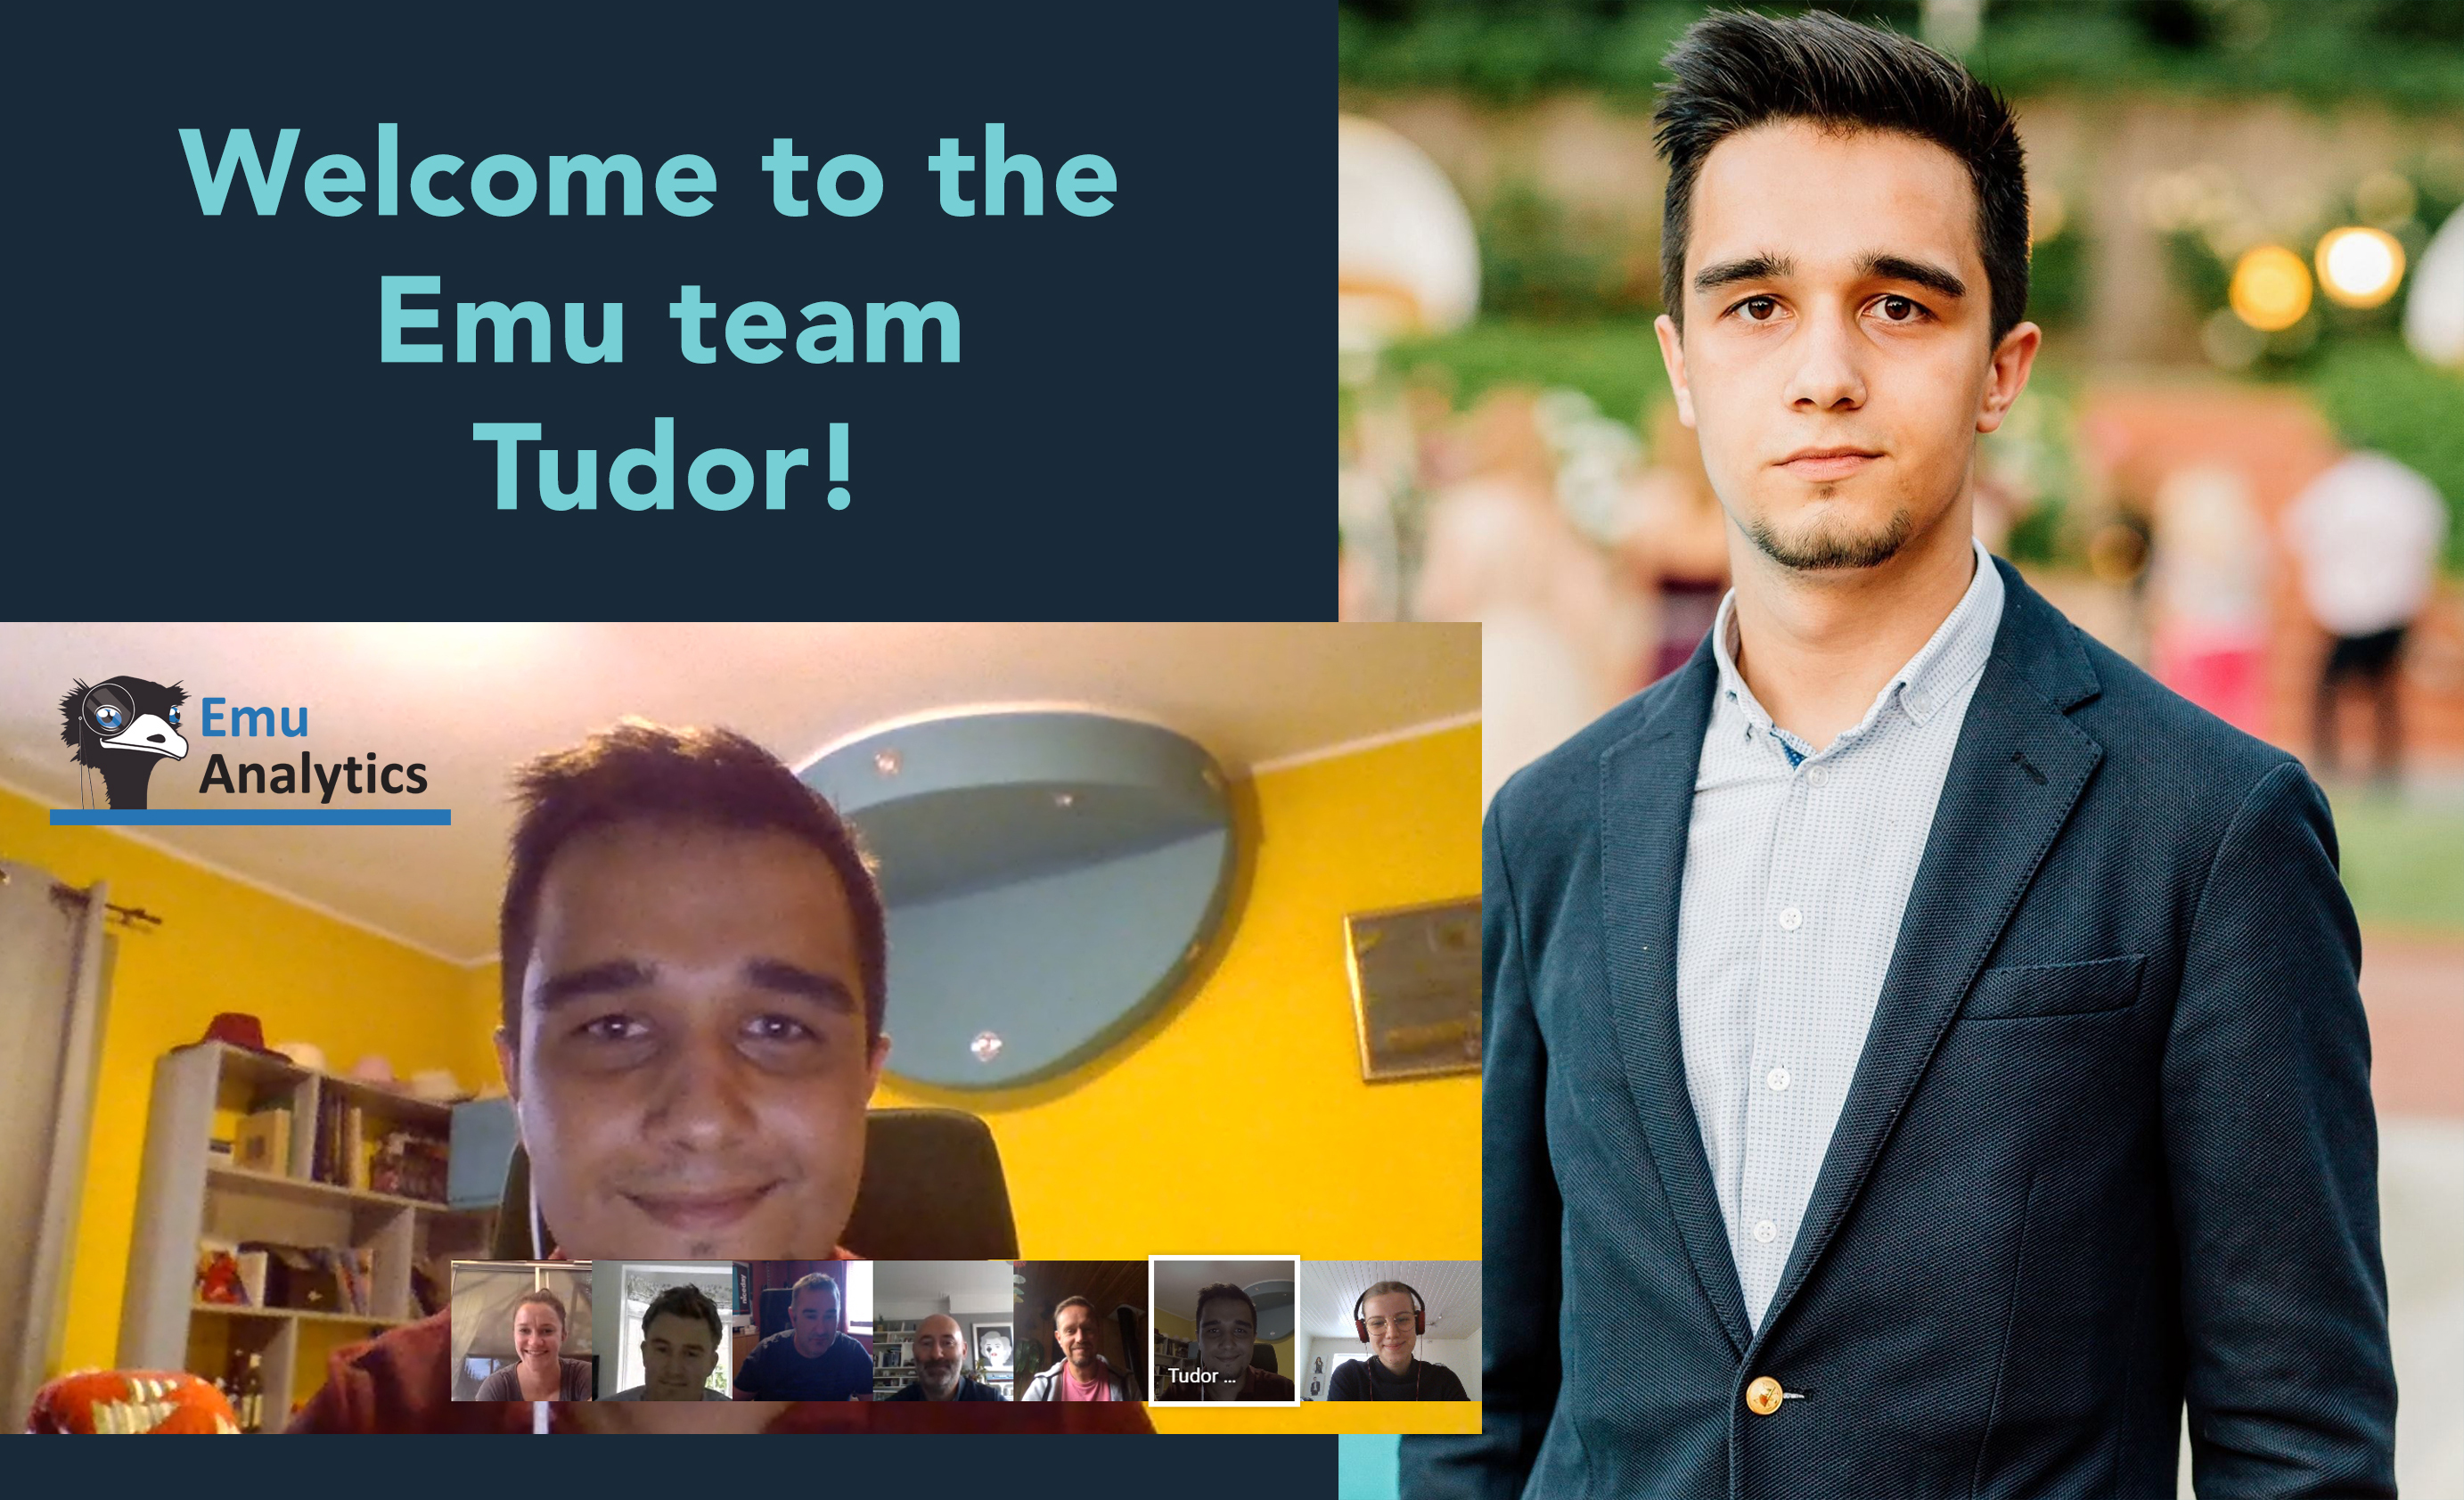 Emu welcomes UCL Q-step intern Tudor to the team